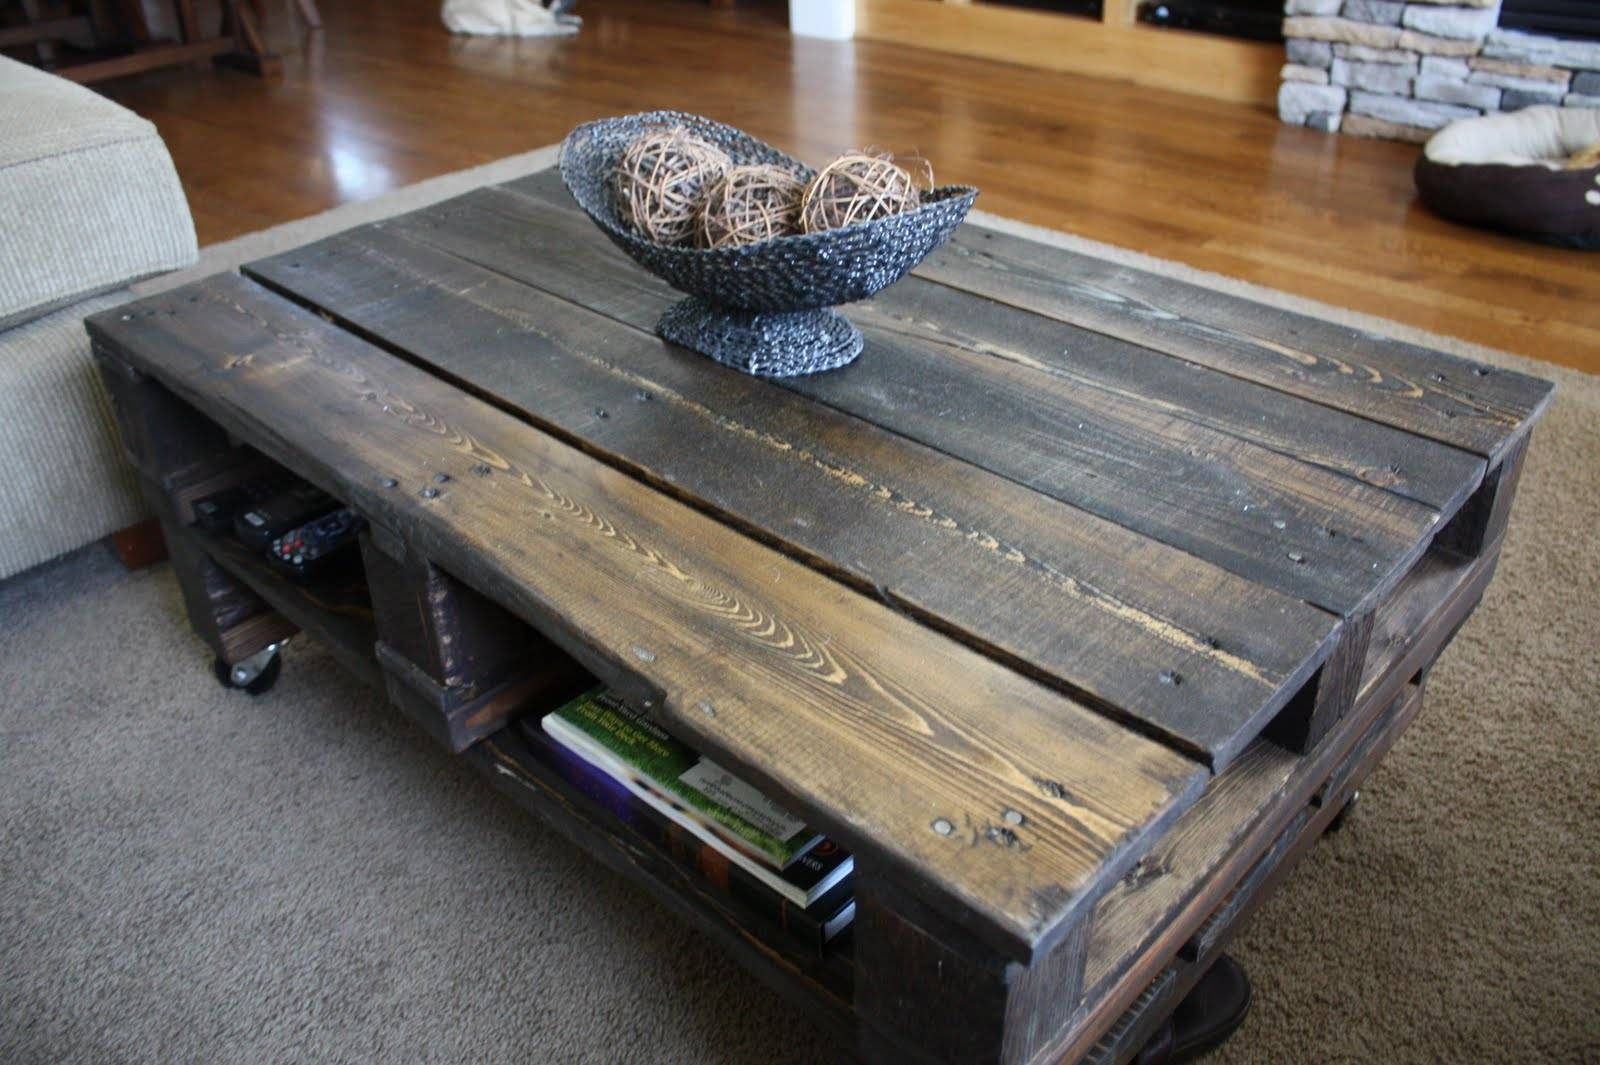 Charming And Homely Rustic Storage Coffee Table | Tedxumkc Decoration regarding Coffee Tables With Box Storage (Image 3 of 30)